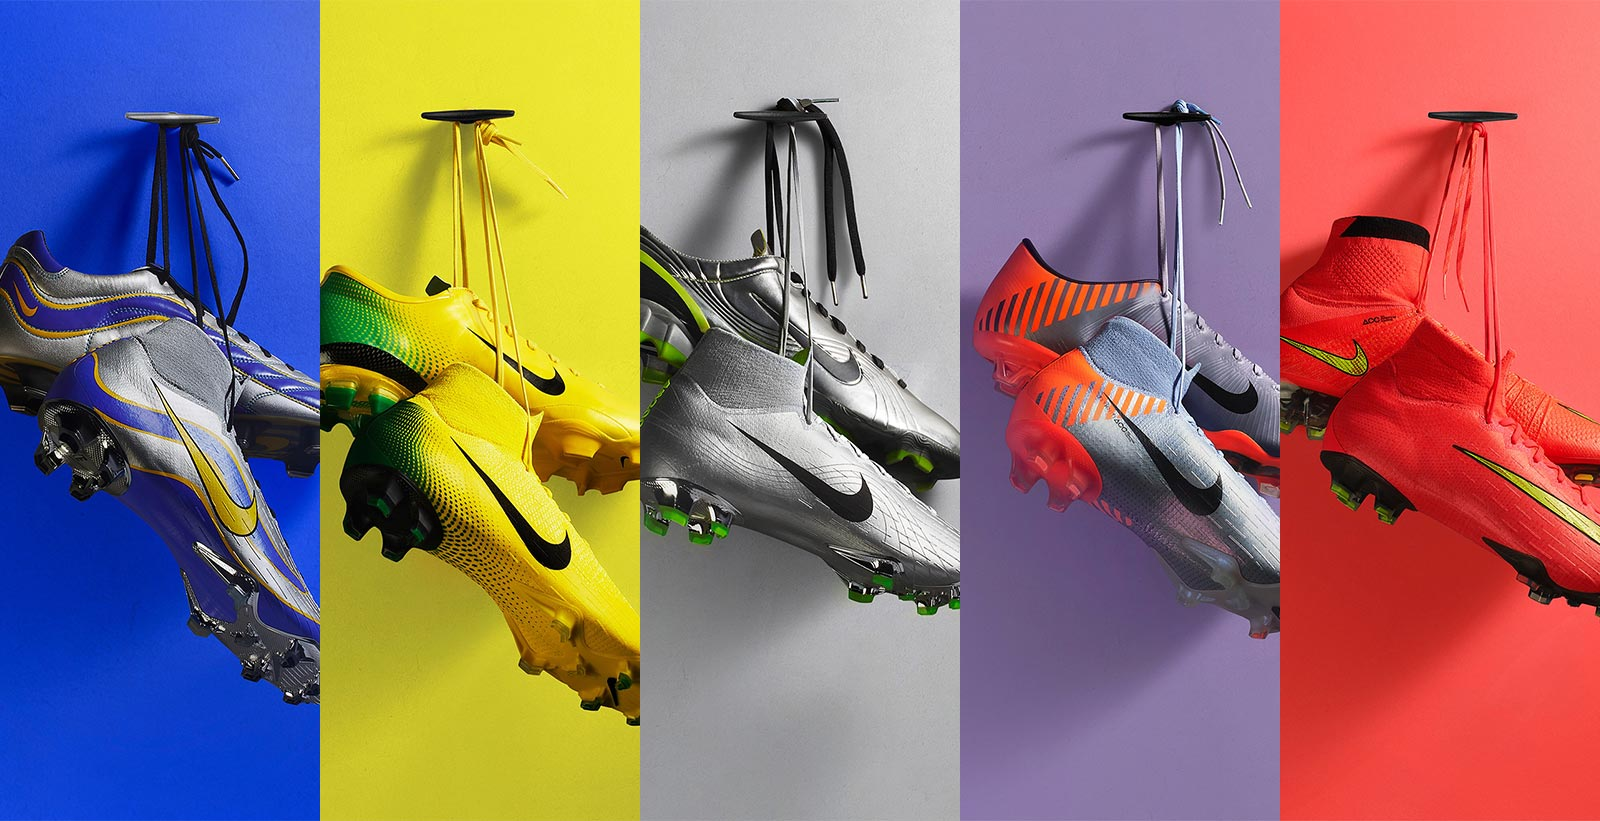 buy online fa70b cf66a Available as Nike iD styles for both Mercurial Vapor 12 and Mercurial  Superfly 6, the Nike Mercurial Heritage World Cups 2018 soccer cleats  should be ...